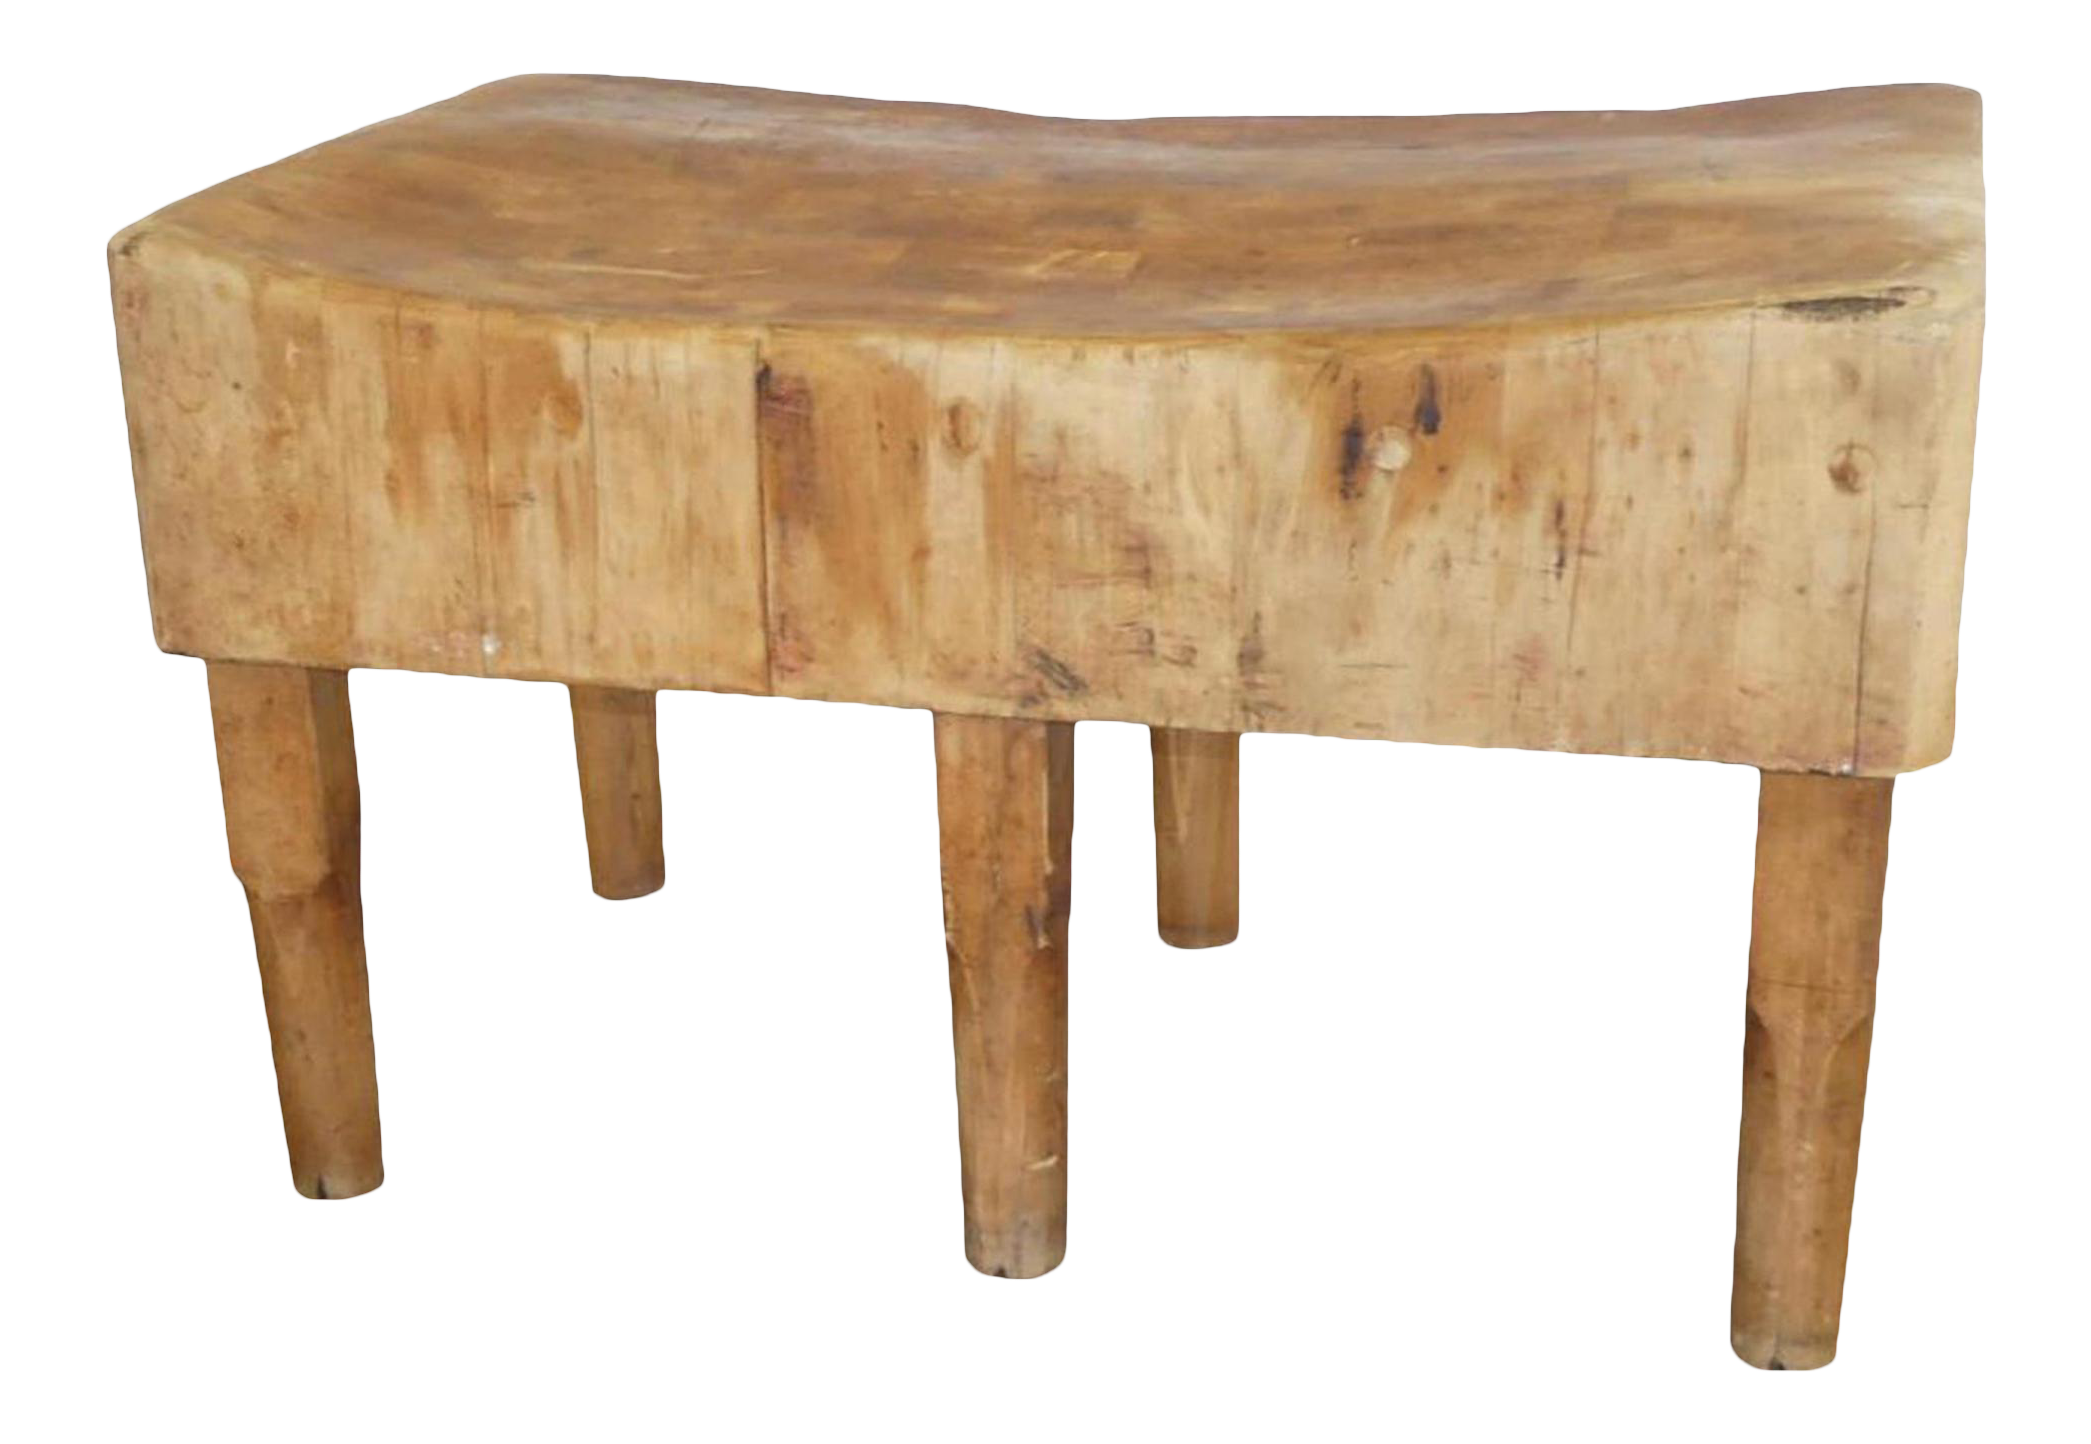 Antique Six Legs Butcher Block Table Kitchen Island By Bally Block Co Chairish